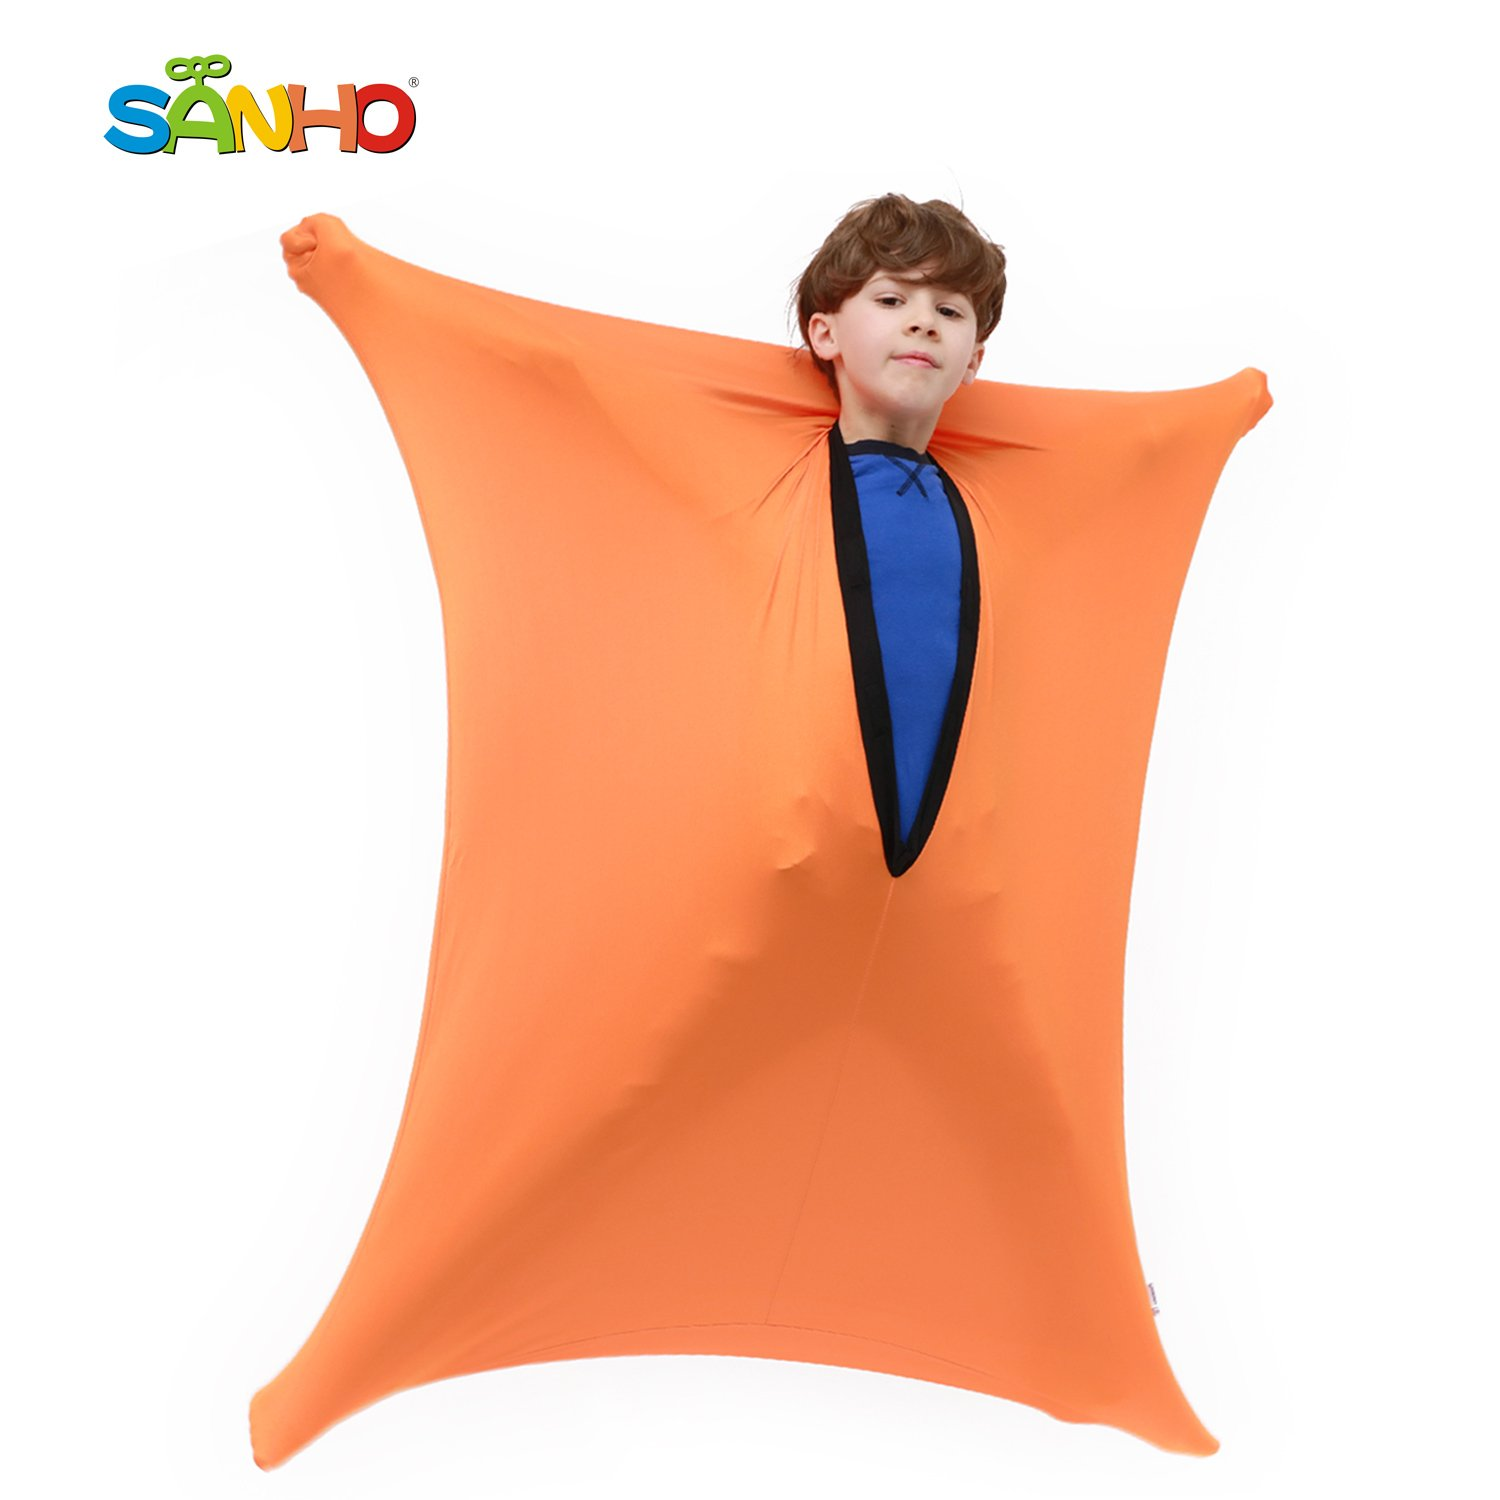 Sanho Yopo Dynamic Movement Sensory Sox, Medium,6-9 years old, 47''LX27''W Orange by Sanho Yopo (Image #1)